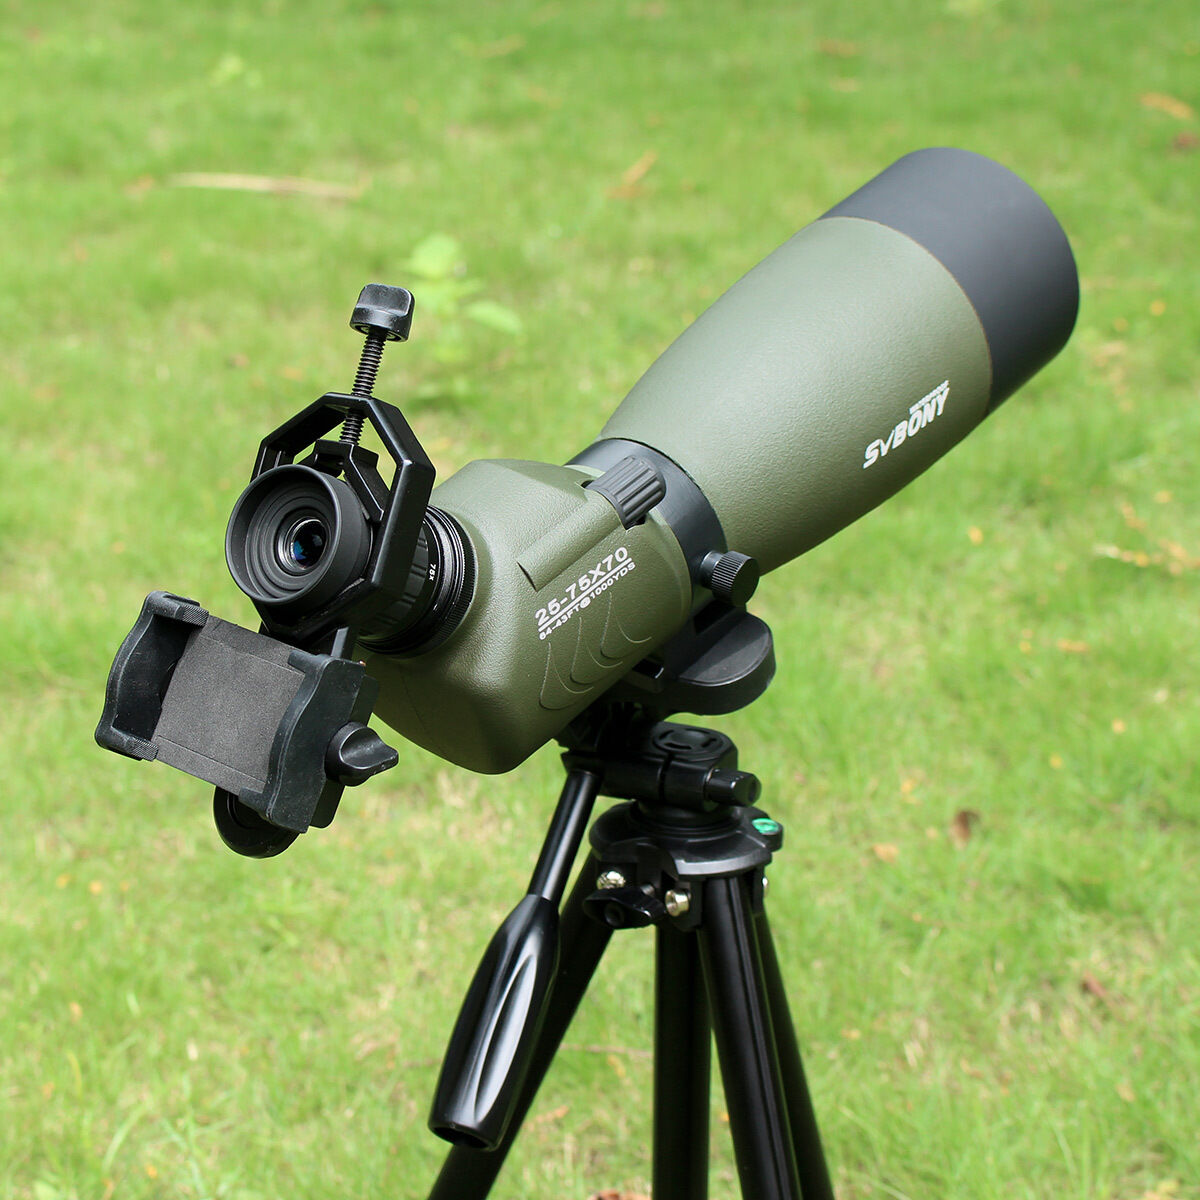 SVBONY FMC 25-75x70mm Angled Zoom &Cell Spotting Scope w/ Tripod &Cell Zoom Phone Adapter f56c4c